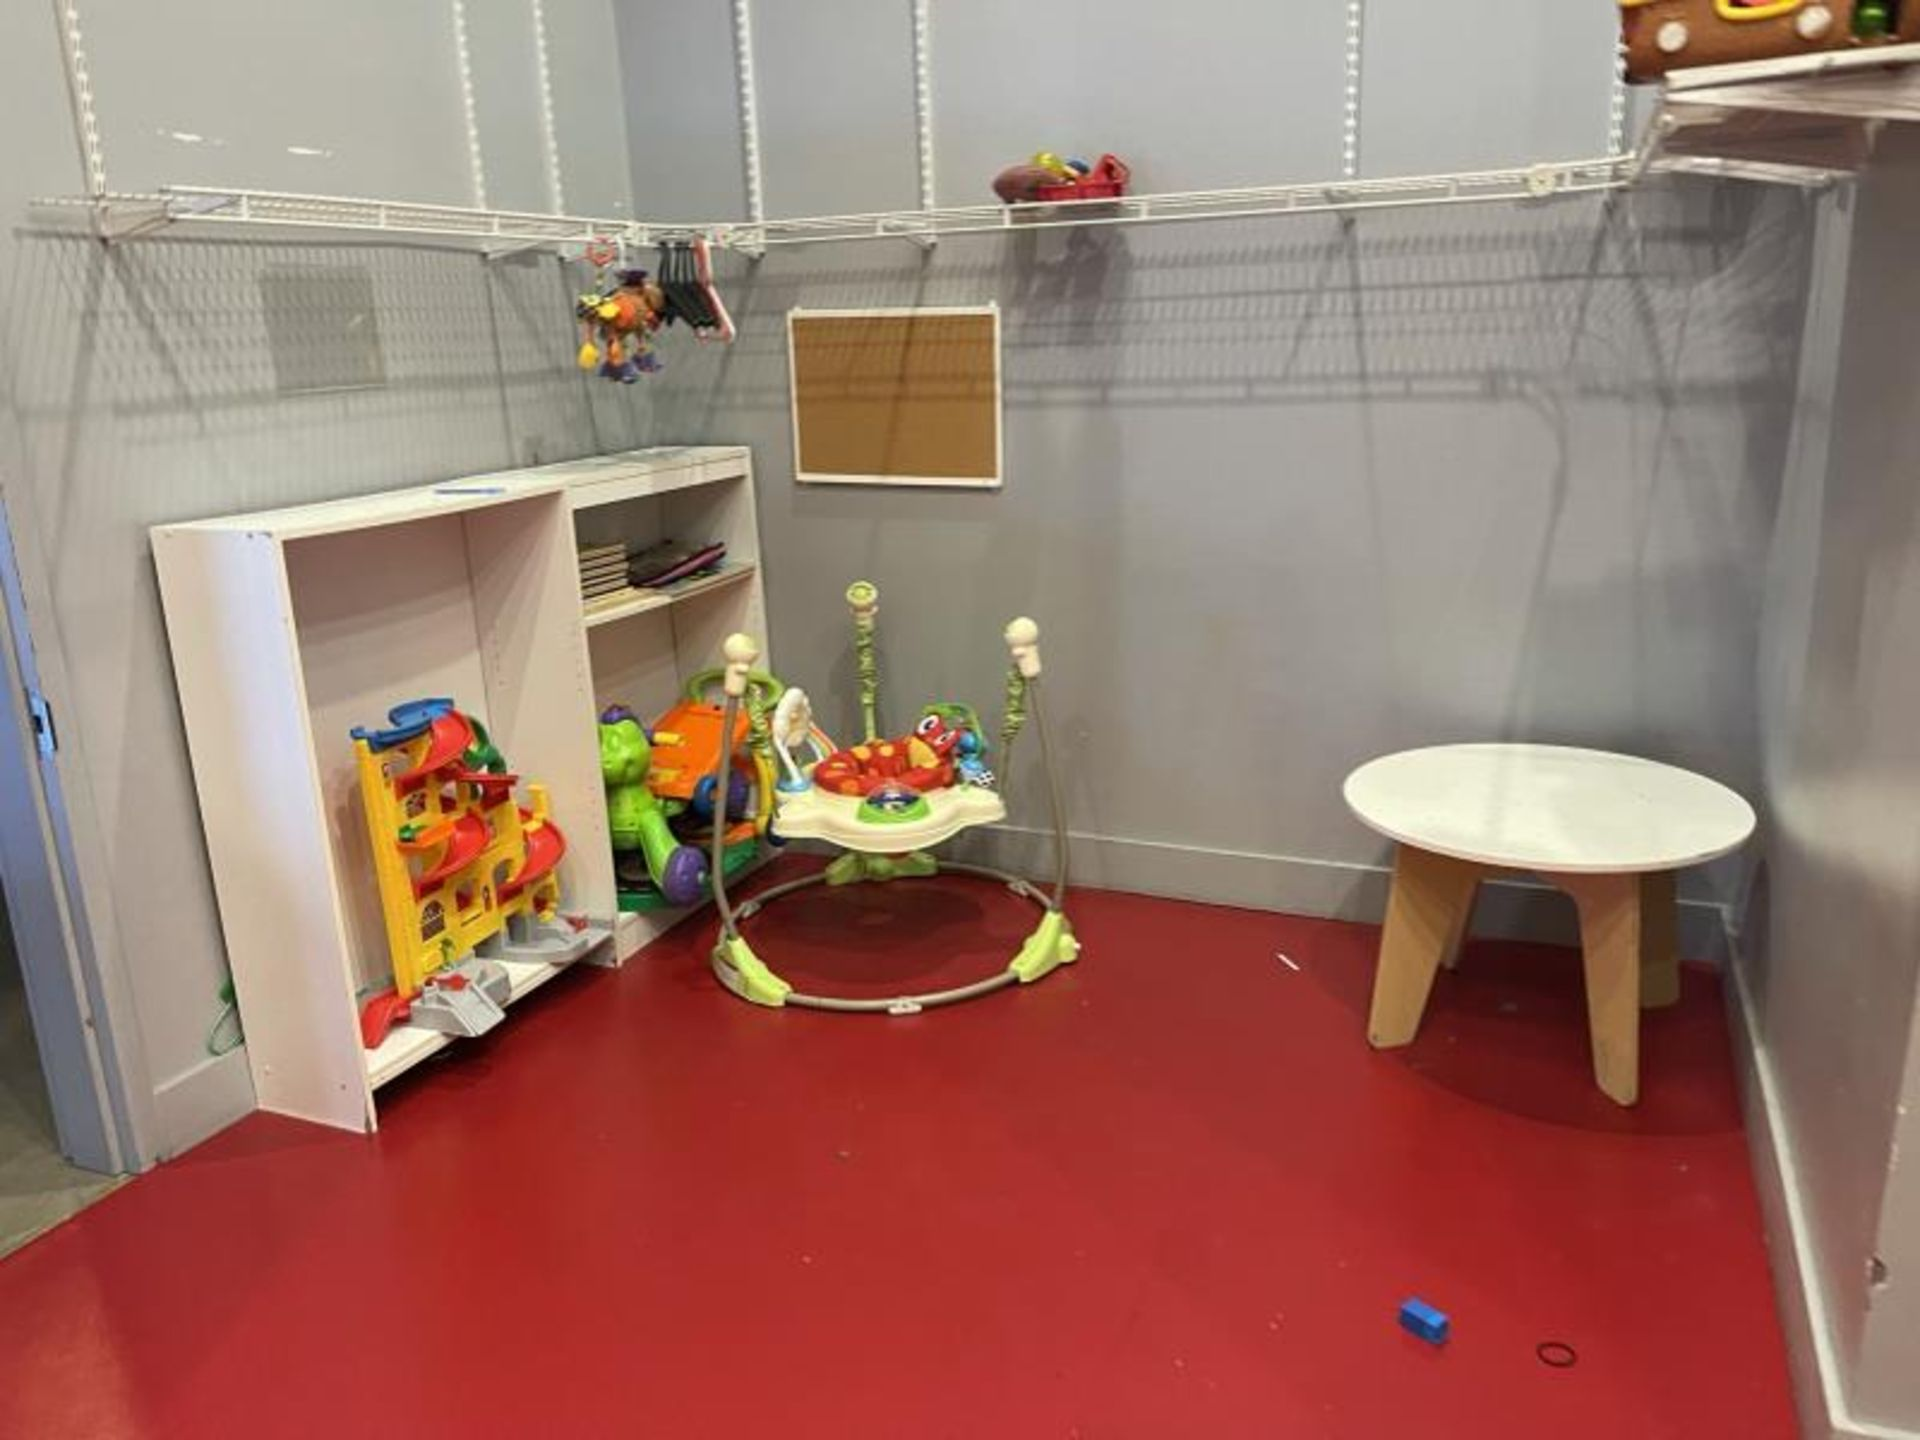 Group Lot of Children's Toys with Play Kitchen & Plastic Bins - Image 4 of 4